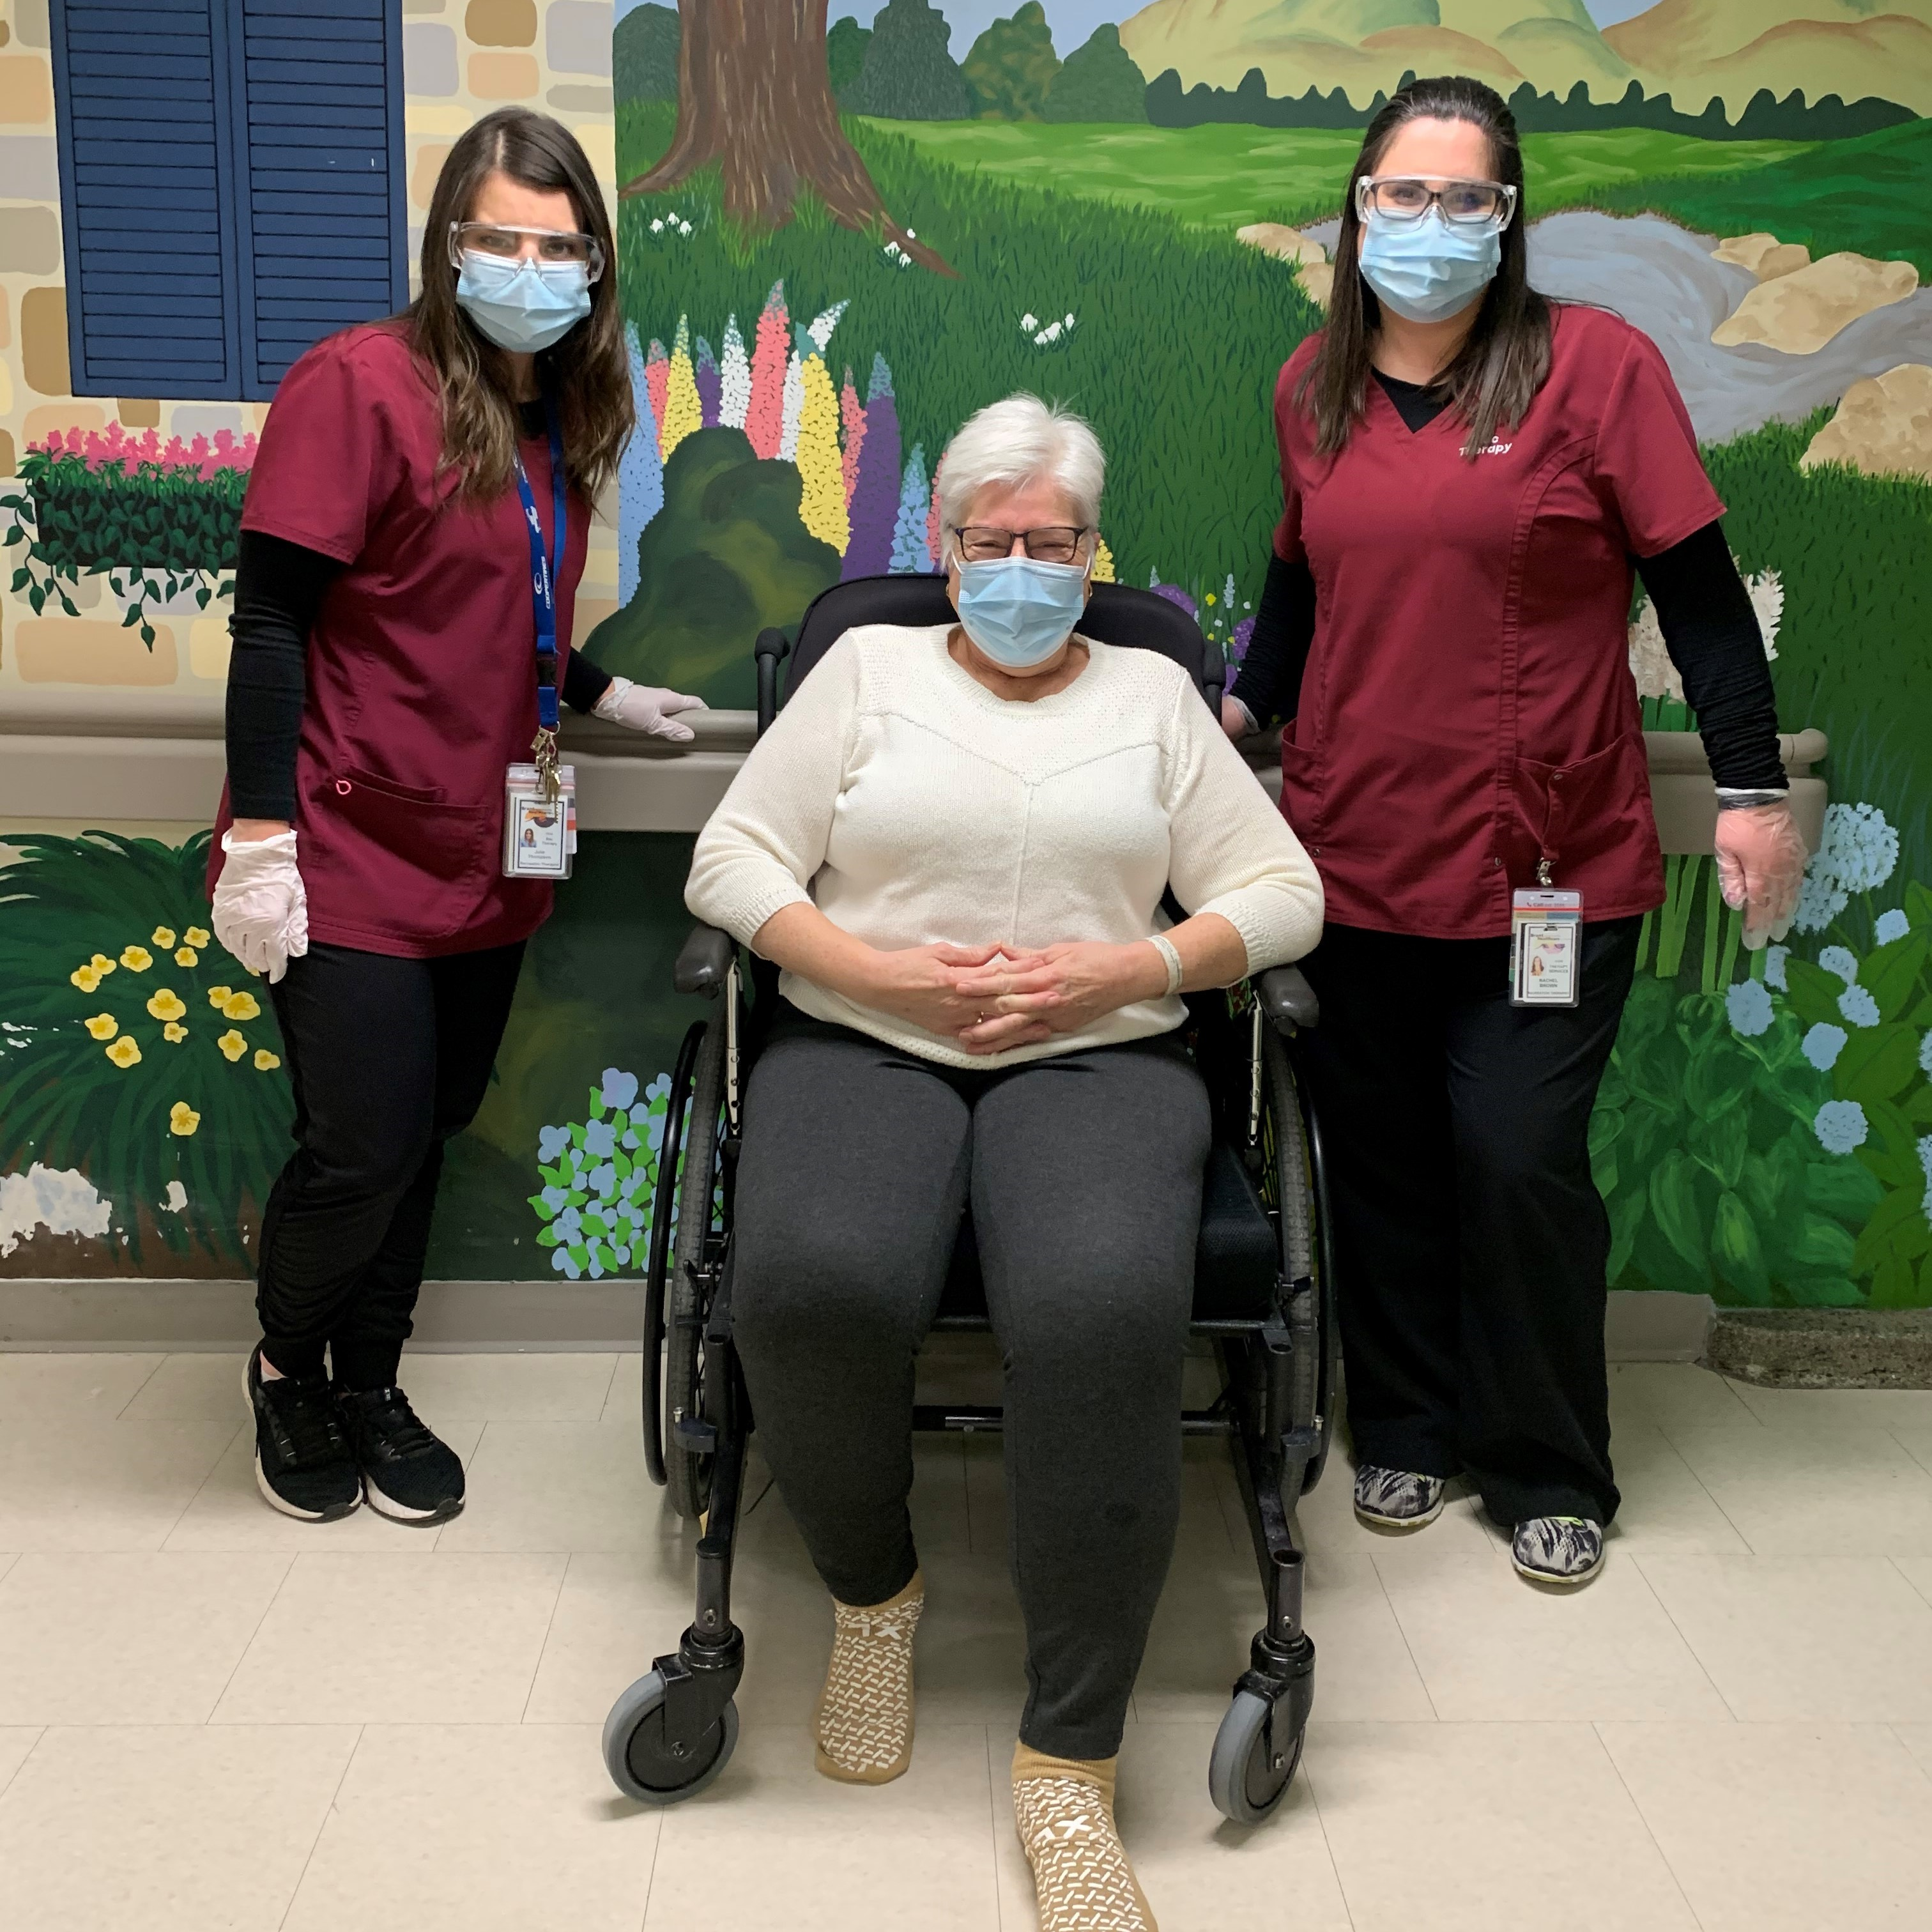 The DOVE Program recreational therapists, Julie and Rachel. with patient Mary Kaus